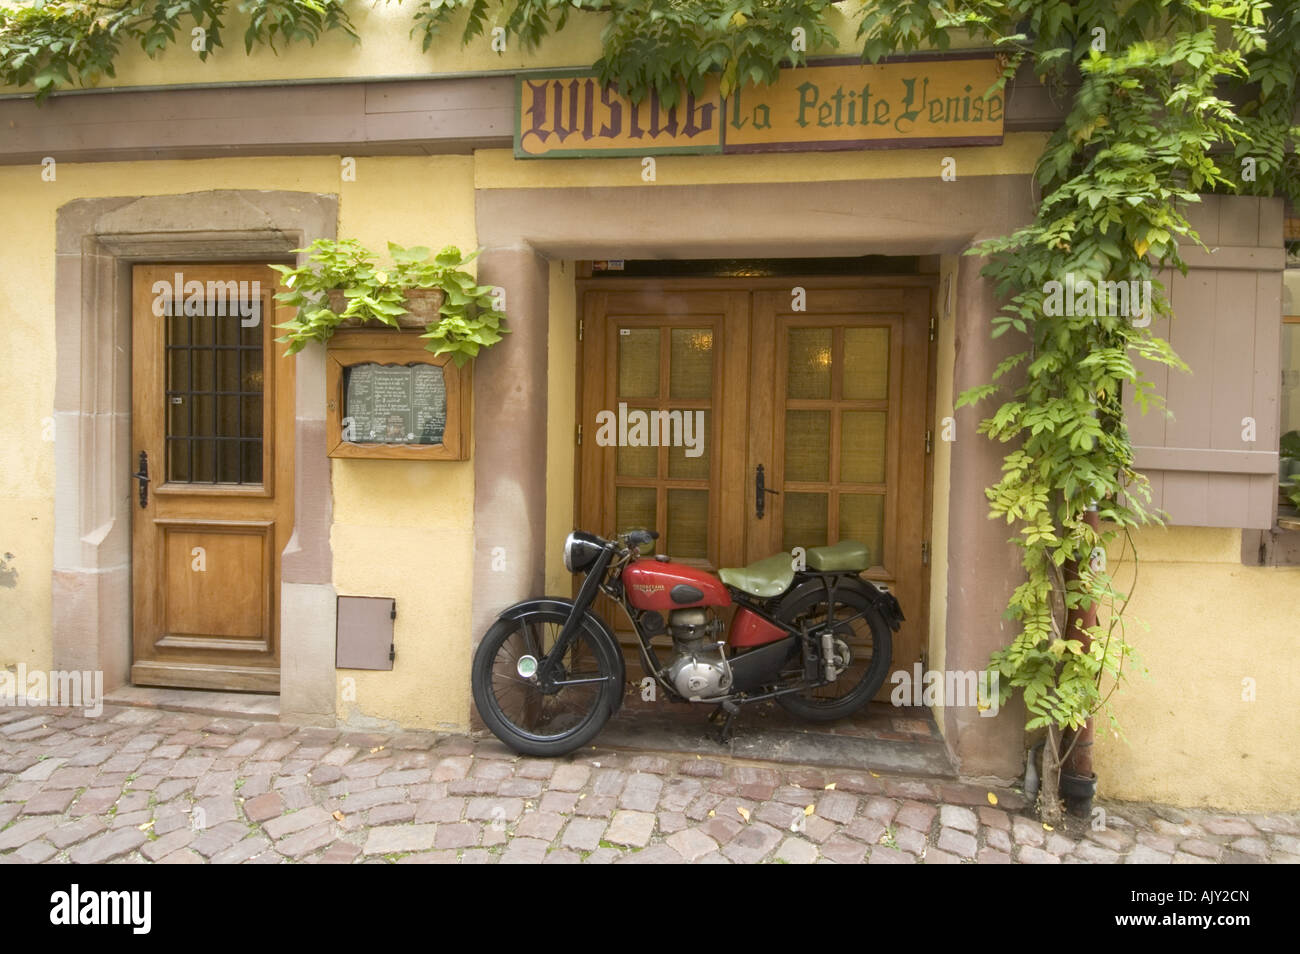 Garage Skoda Colmar France Parking Stock Photos France Parking Stock Images Page 2